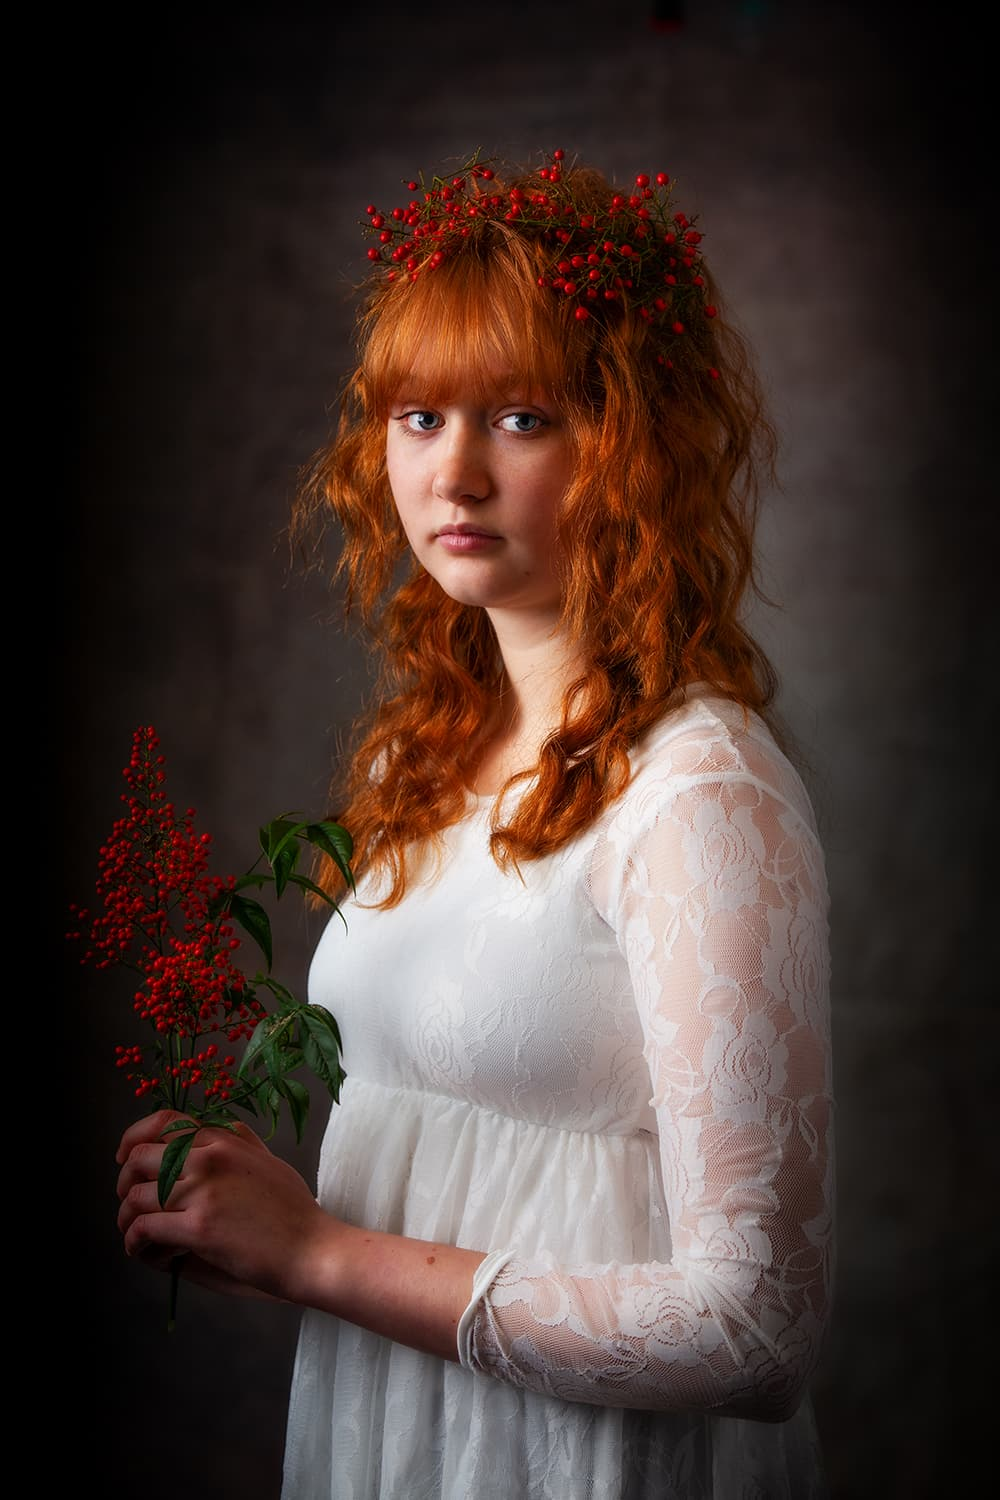 Teen portrait of a red haired girl holding red berries in a white dress.